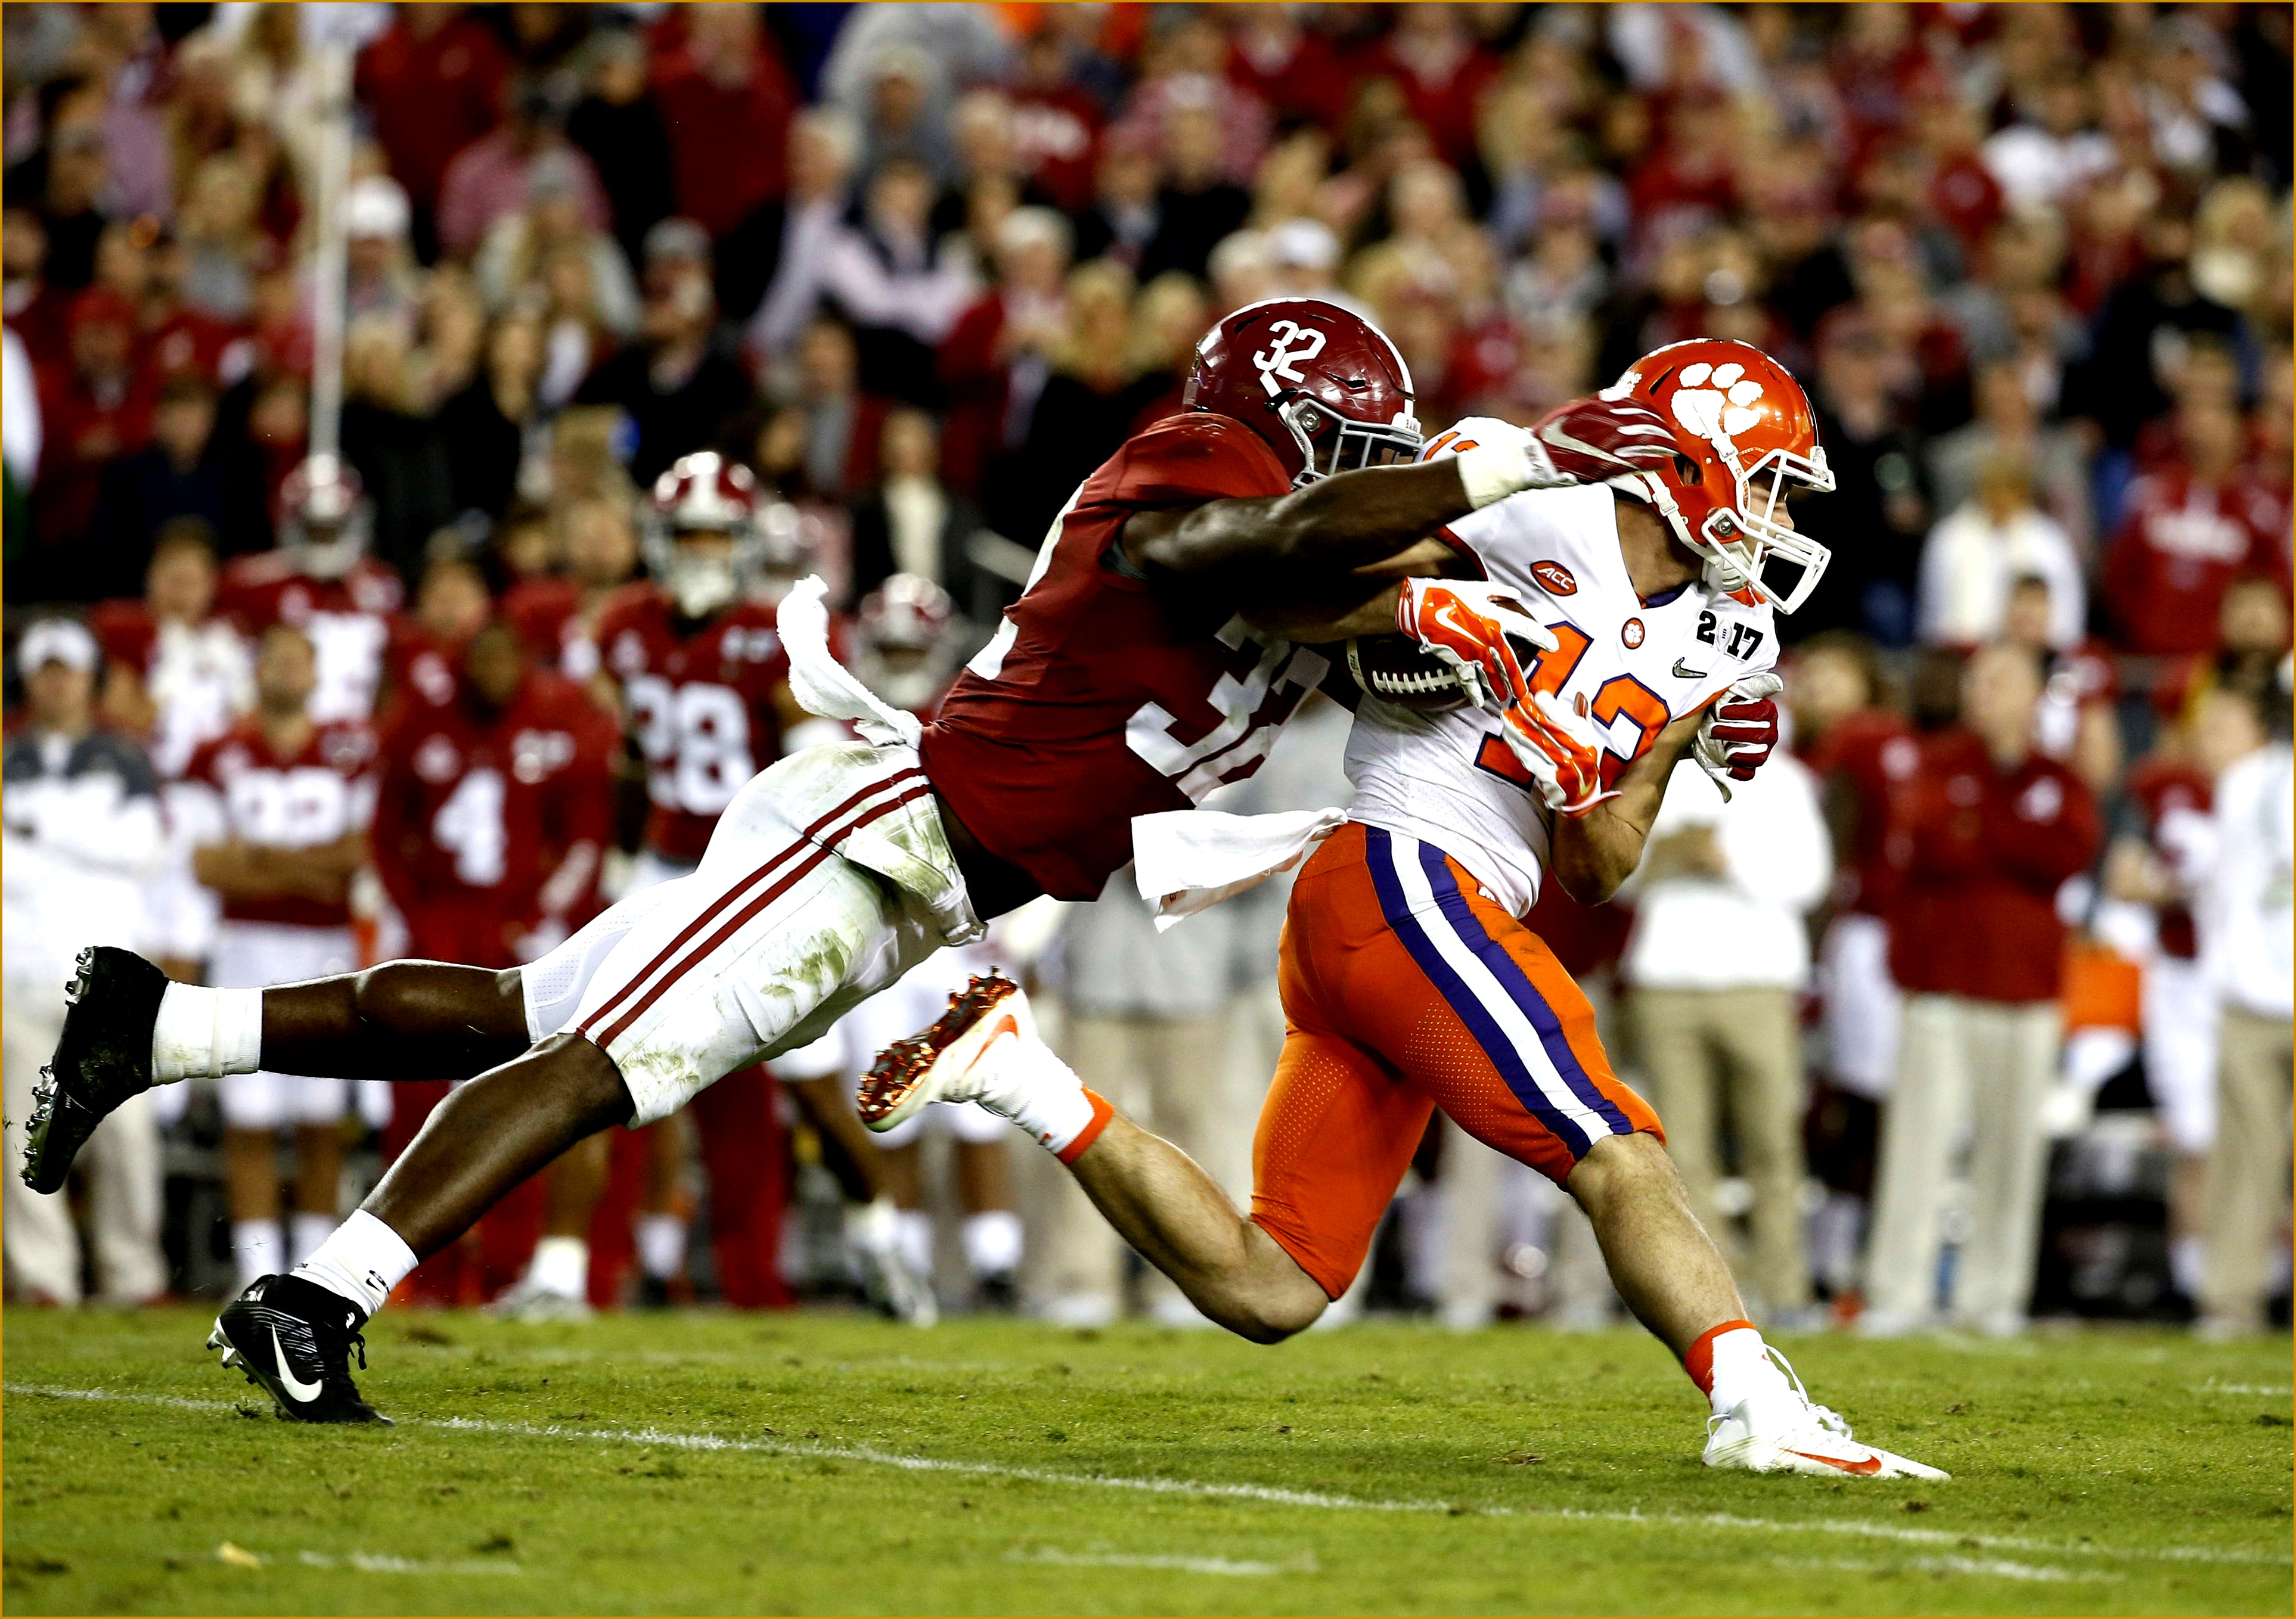 Alabama Football Daily Insider Spring Depth Chart Page 4 Ncaa Football Cfp National Championship Clemson 27173852